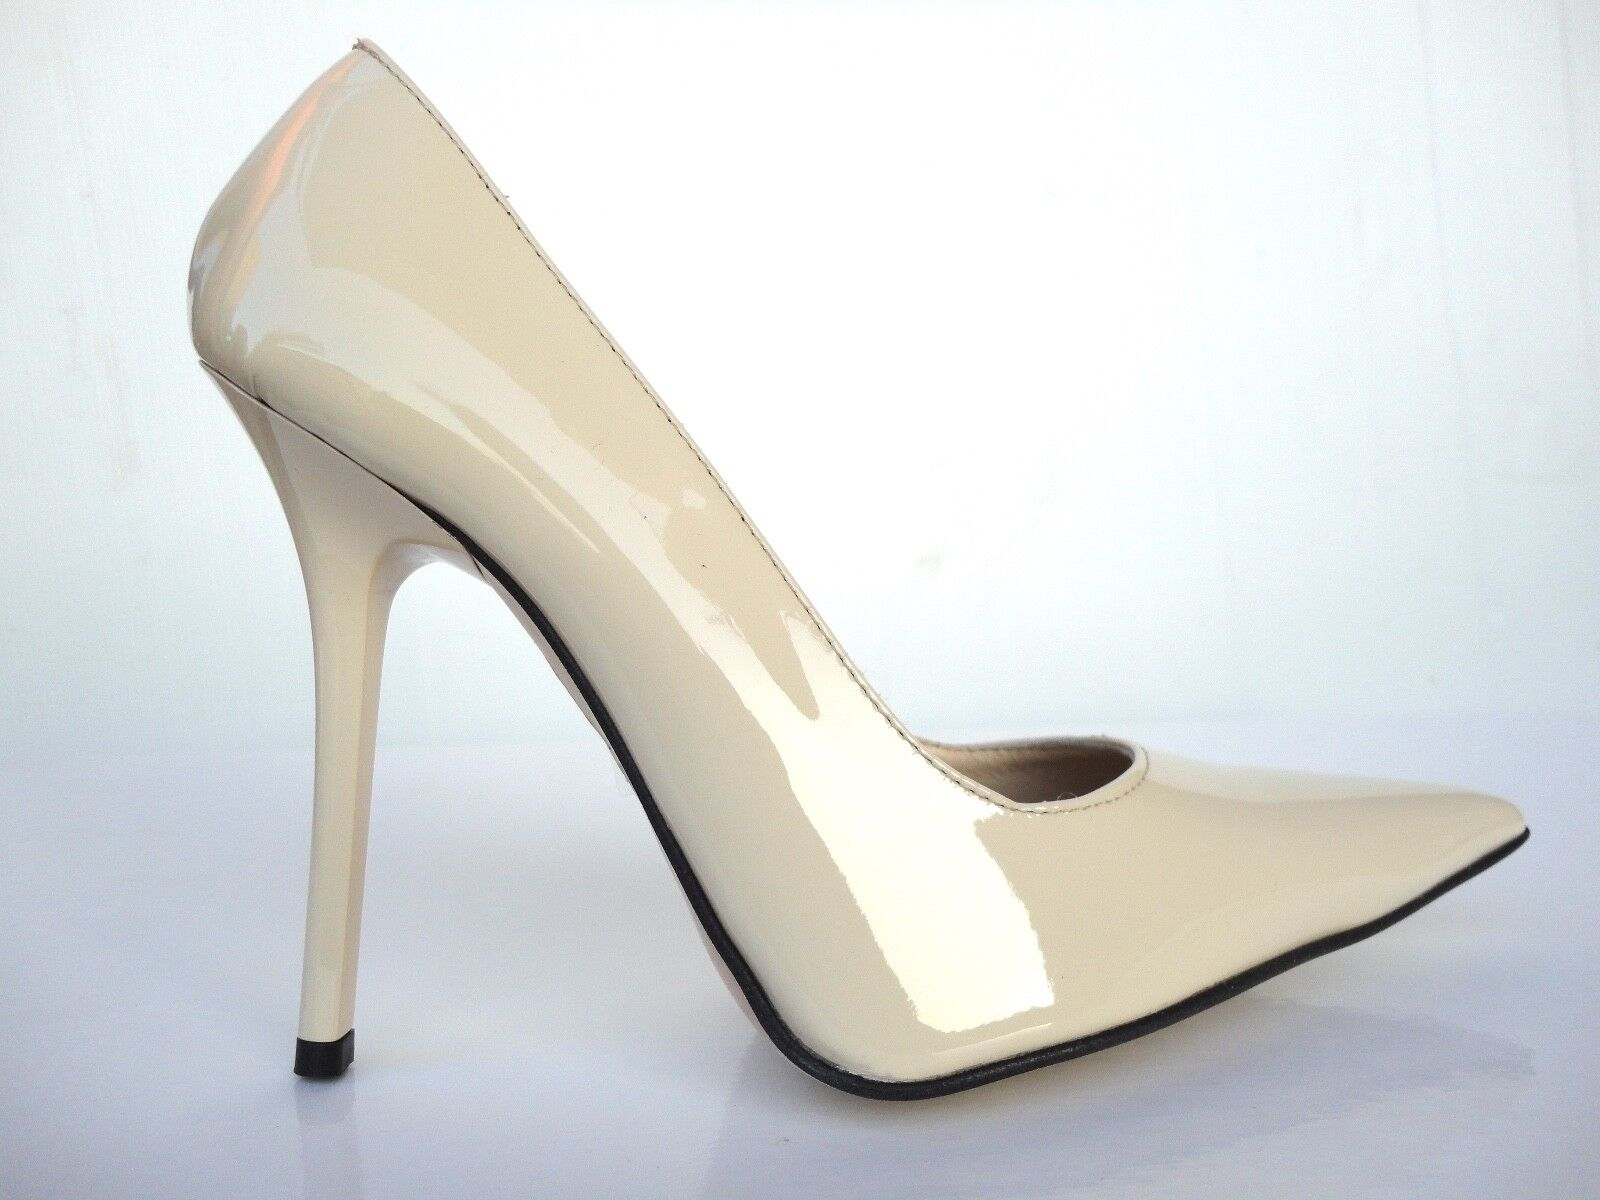 751f77f1bb3 Details about GIOHEL ITALY HIGH HEELS POINTY TOE PUMPS SCHUHE LEATHER COURT  SHOES NUDE BEIGE